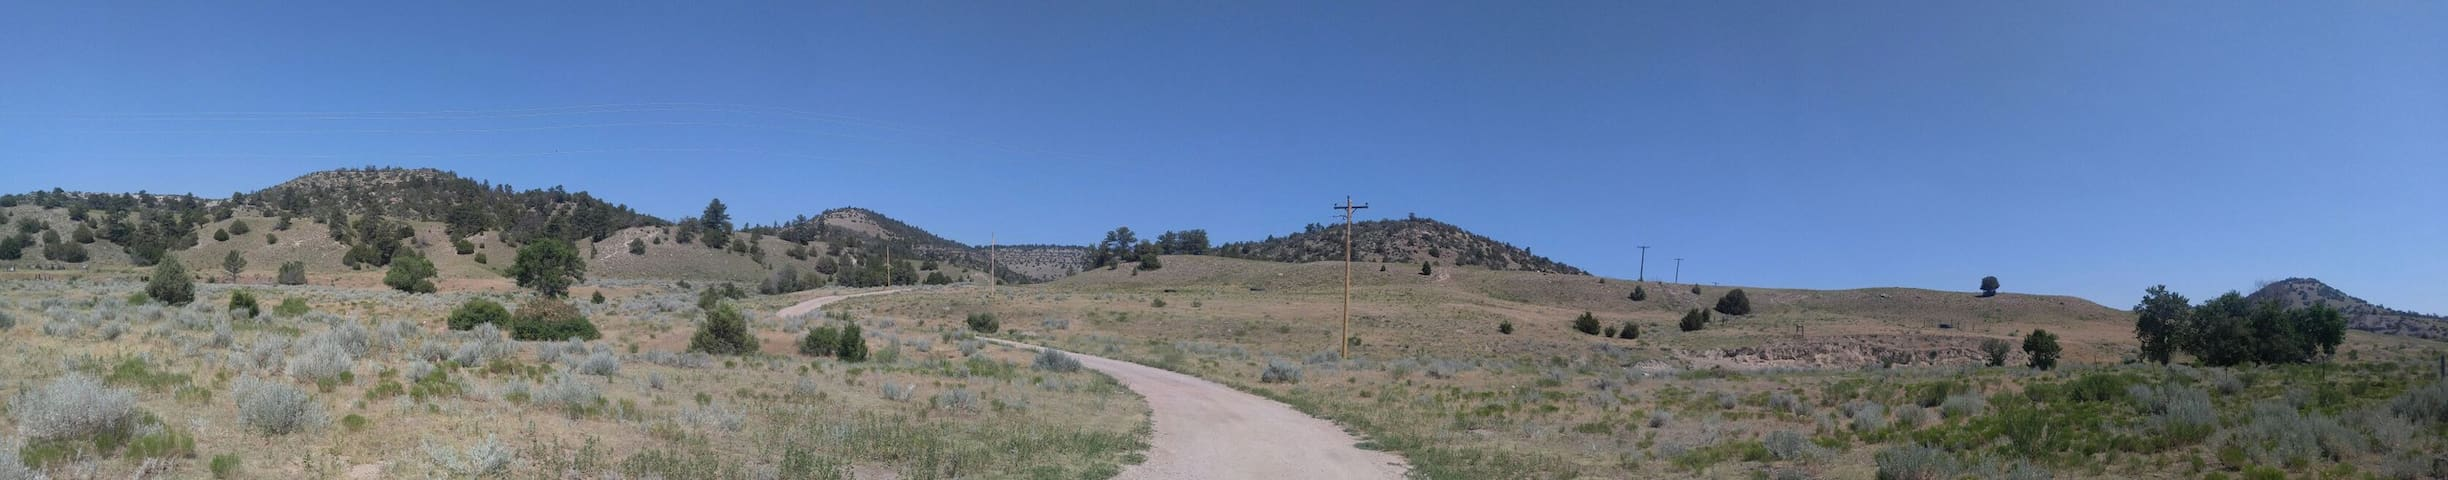 IT'S AVAILABLE: ECLIPSE RV Site in SE Wyoming!